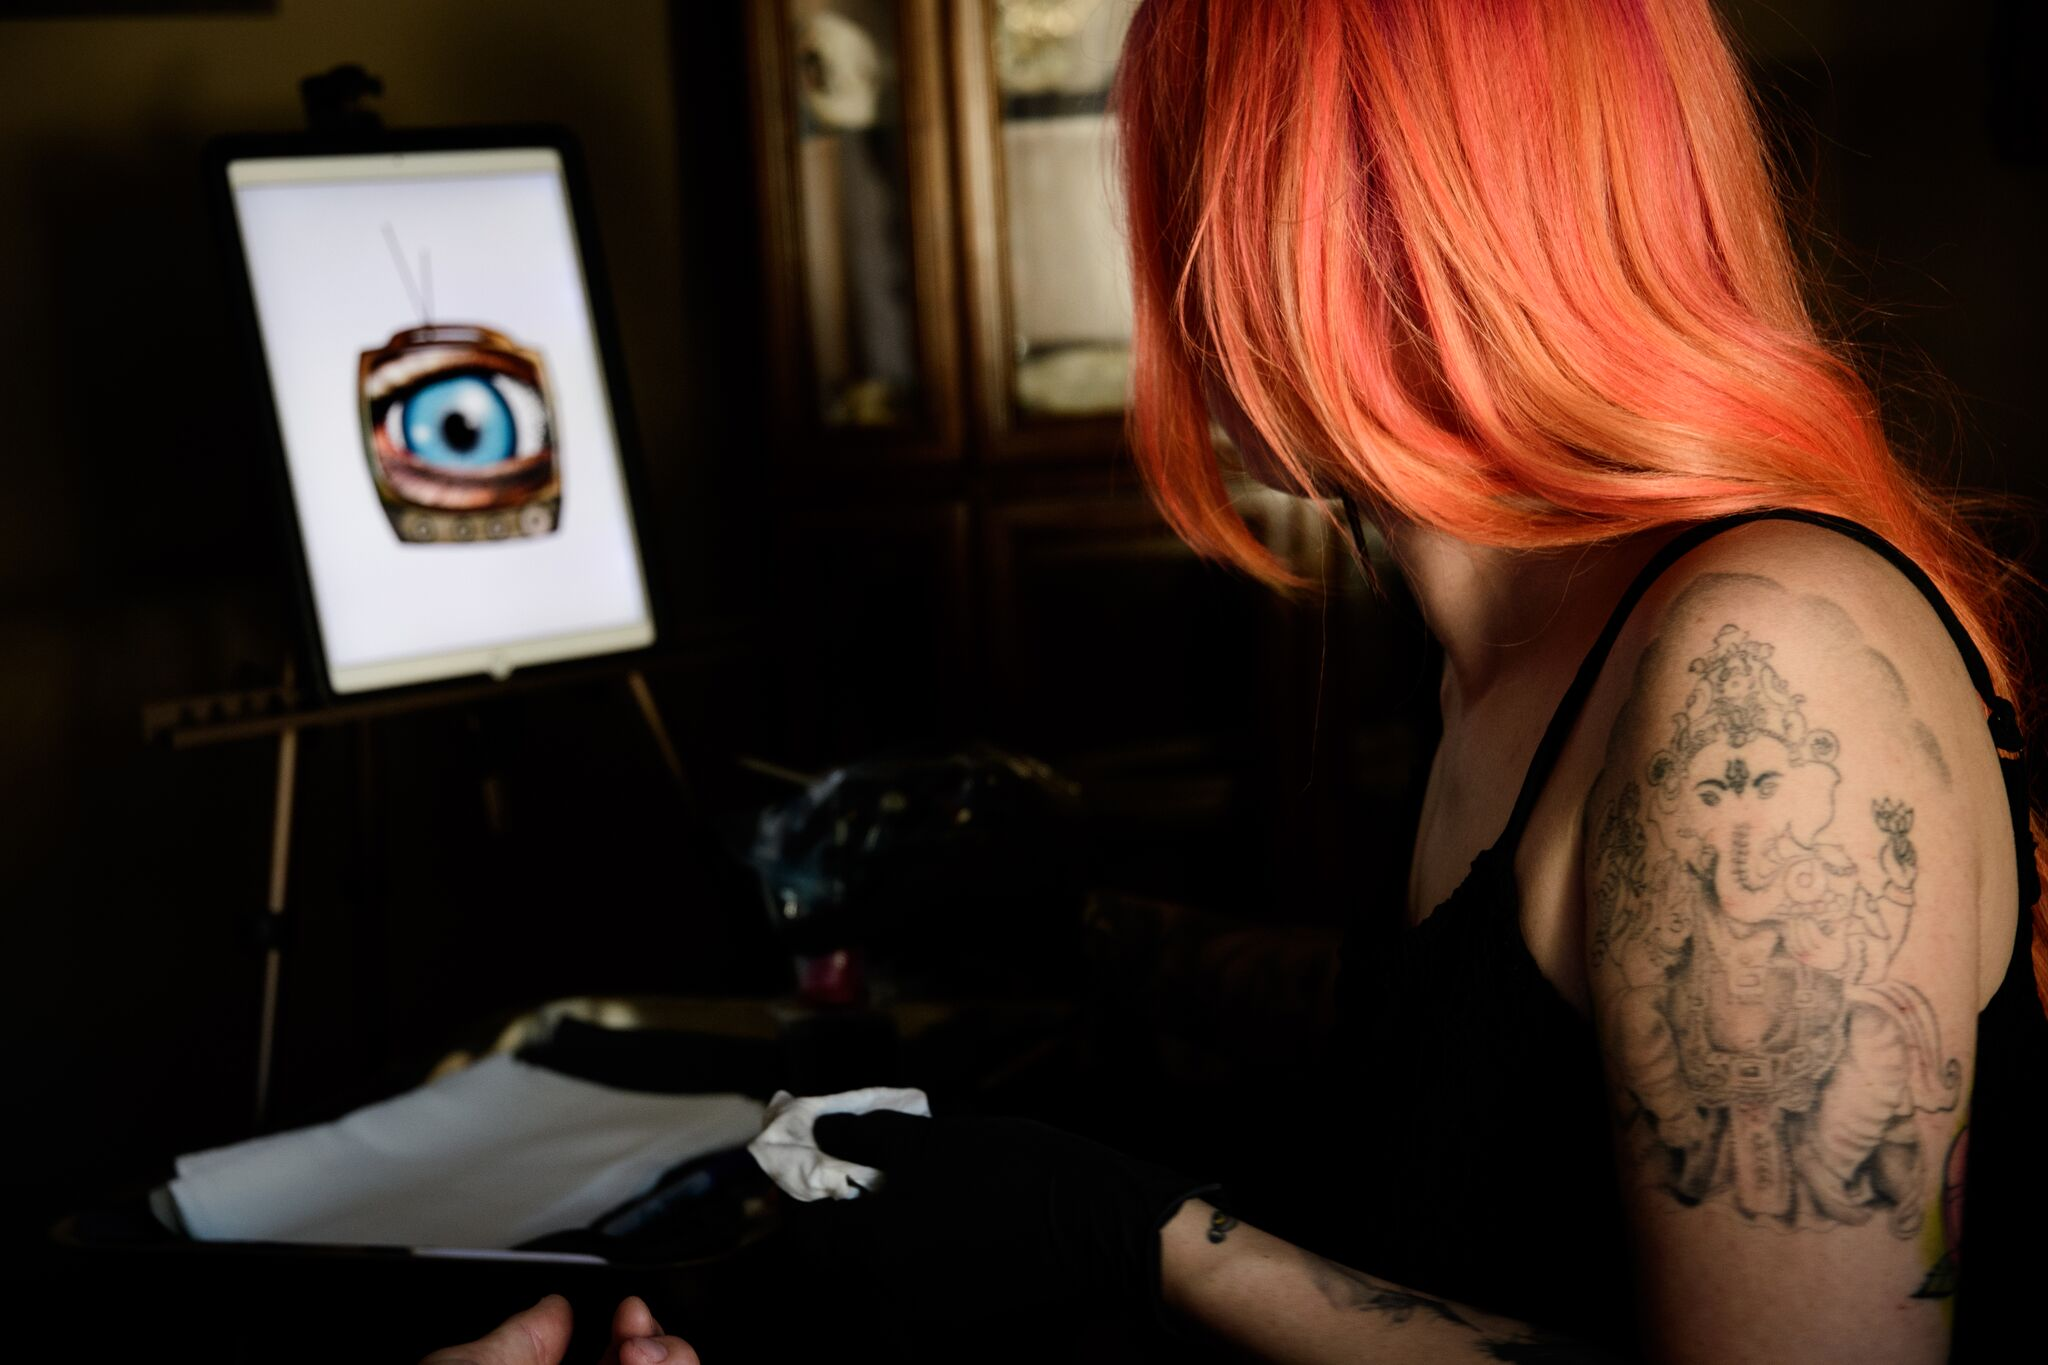 mzw-photography-delaney-ink-22_preview.jpg